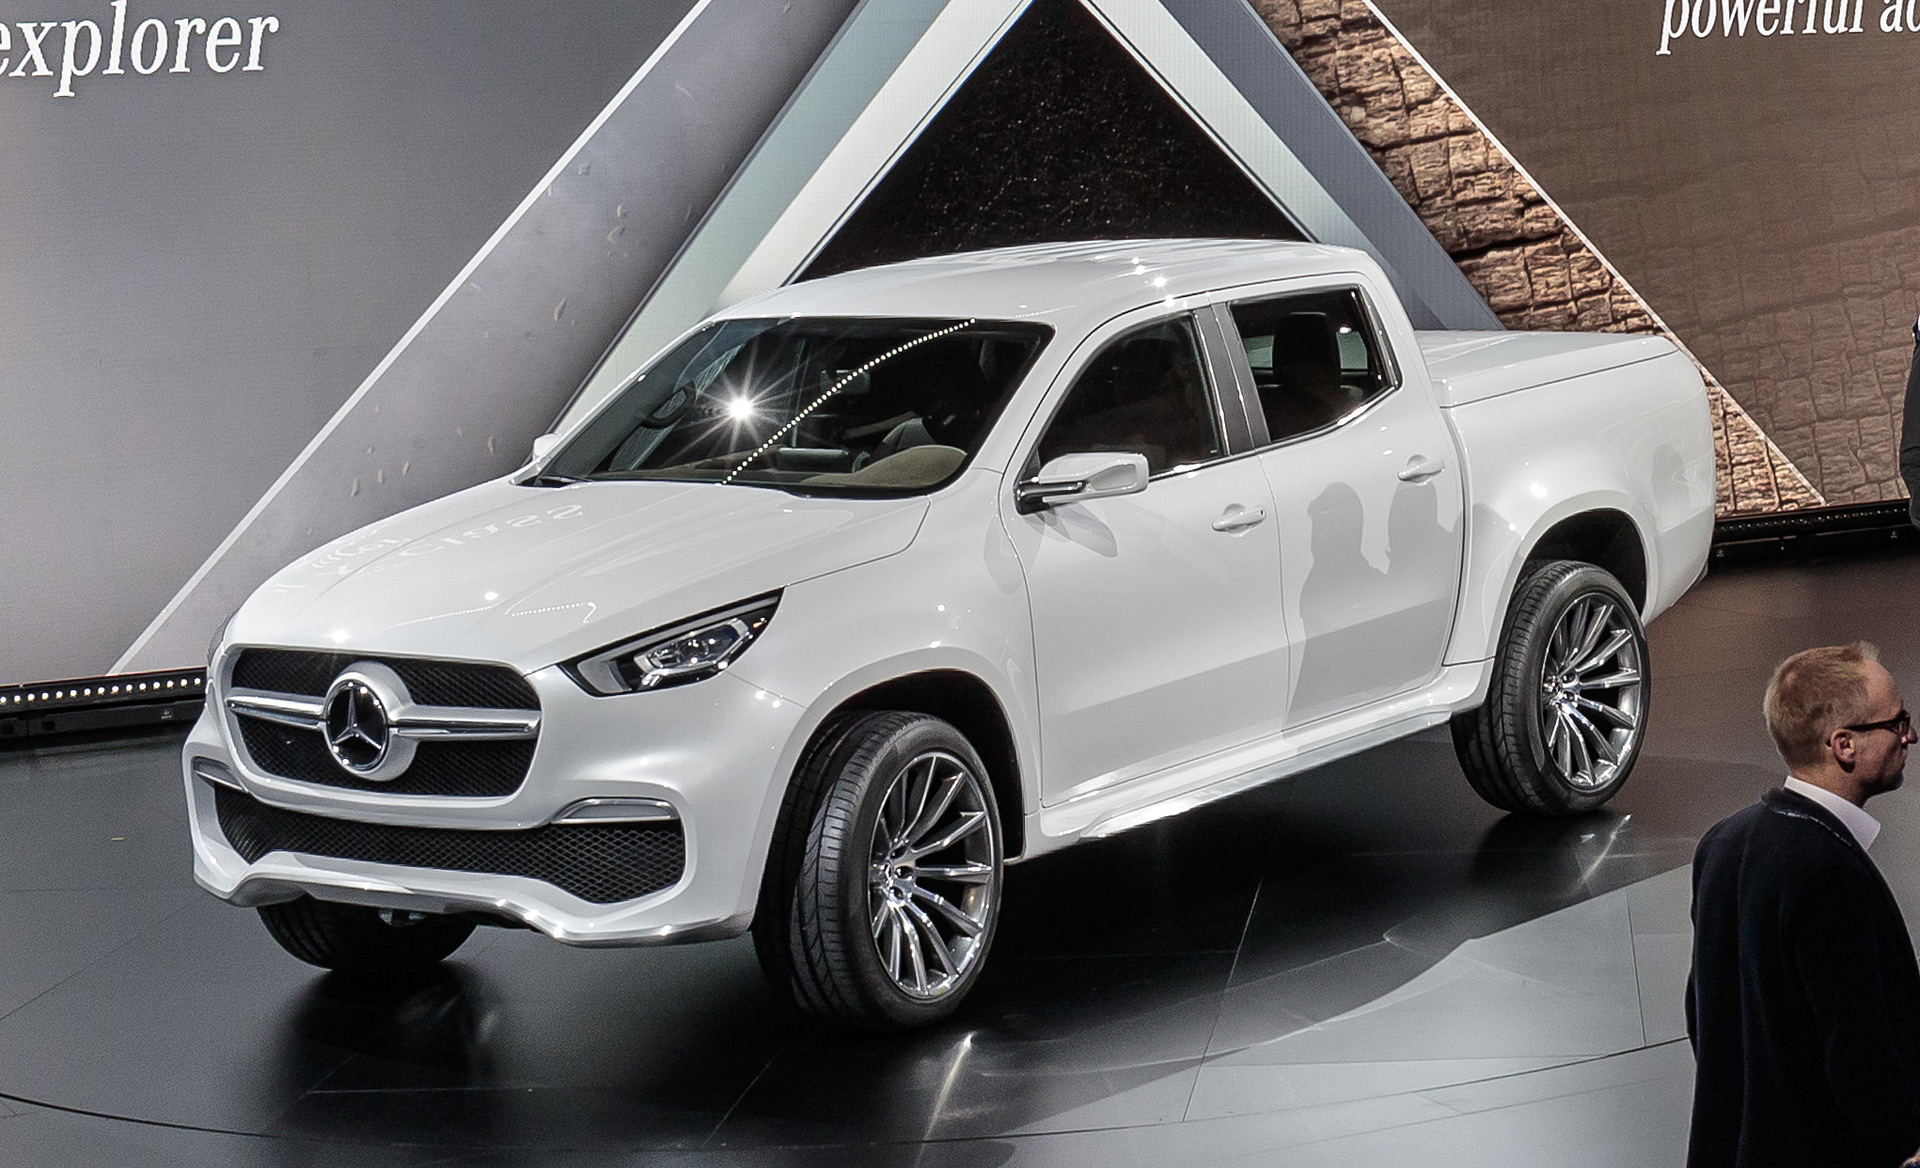 Mercedes benz hops into beds with new x class pickup truck for Mercedes benz trucks